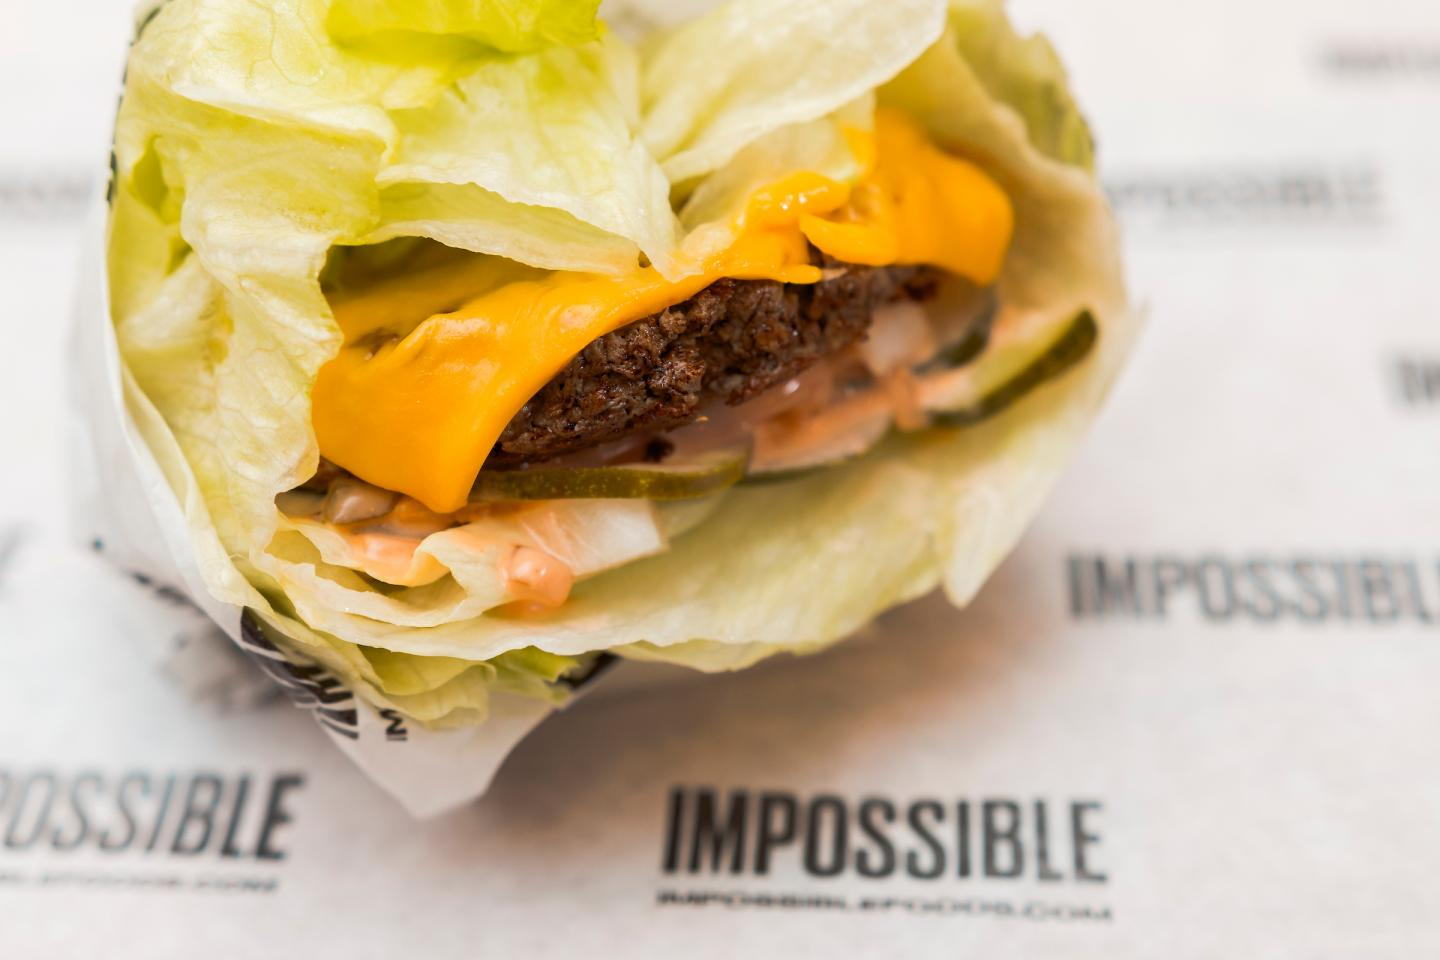 Impossible Burger Salad Style at M Burger